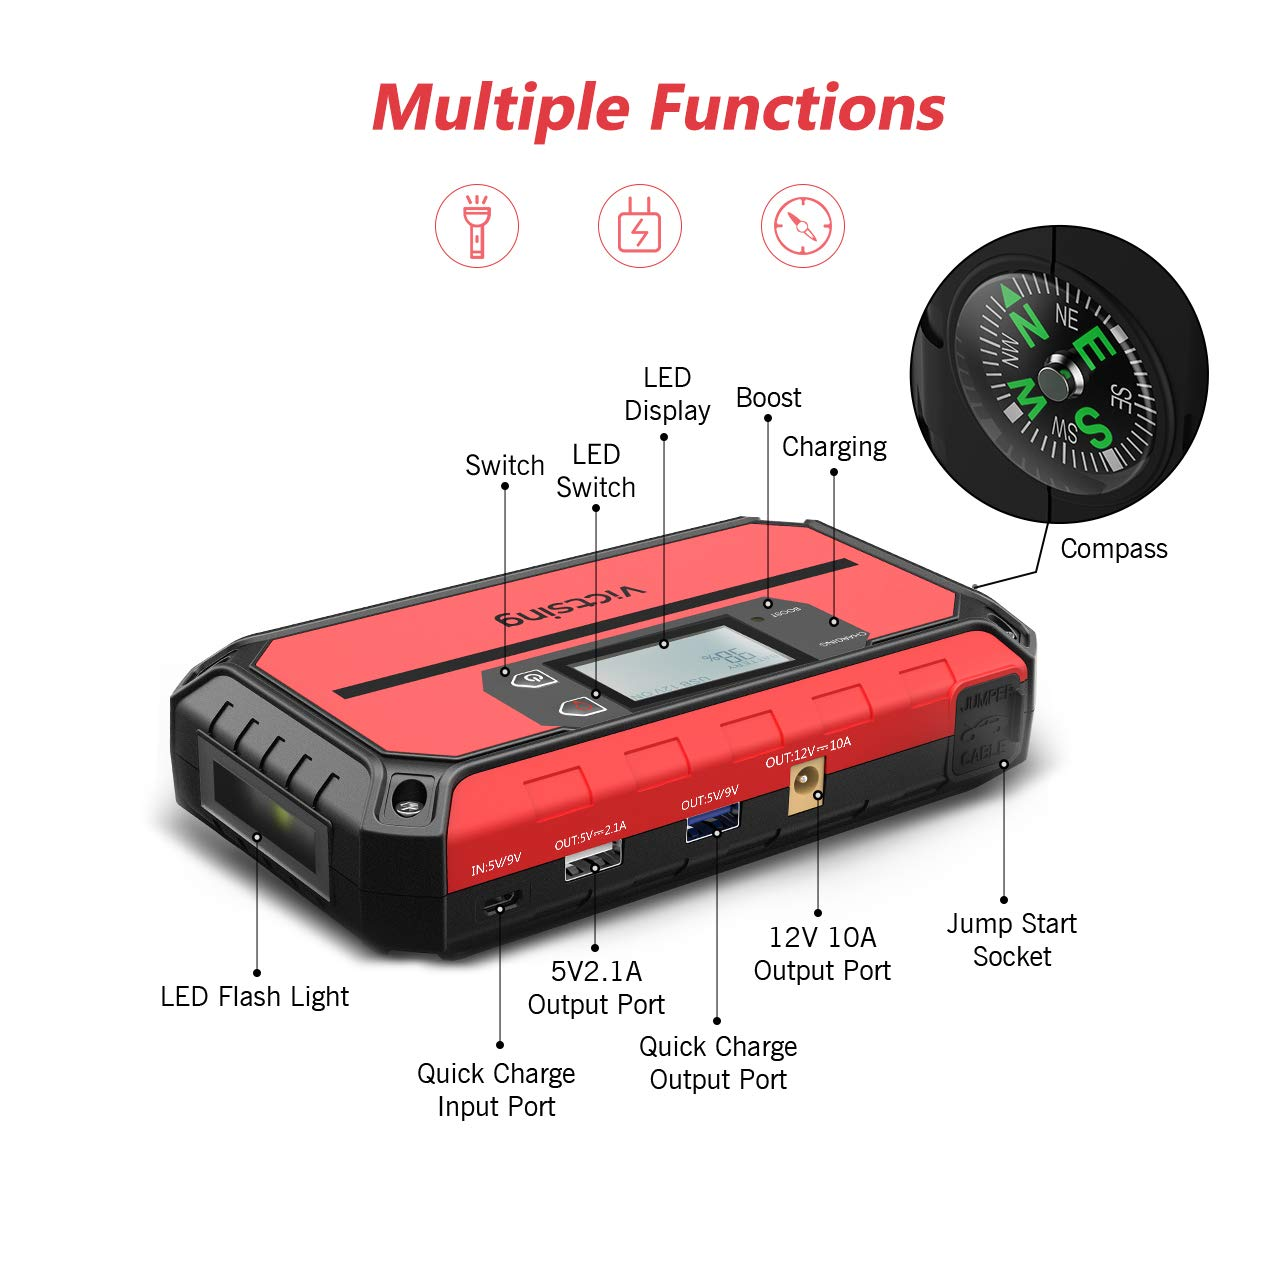 VicTsing Portable Car Jump Starter 1000A Peak 20800mAh (Up to 8.0L Gas, 6.0L Diesel Engine), 12V Auto Battery Booster,5 in 1 Compact Power Pack with QC3.0 Output, Built-in Compass and LED Light by VicTsing (Image #6)